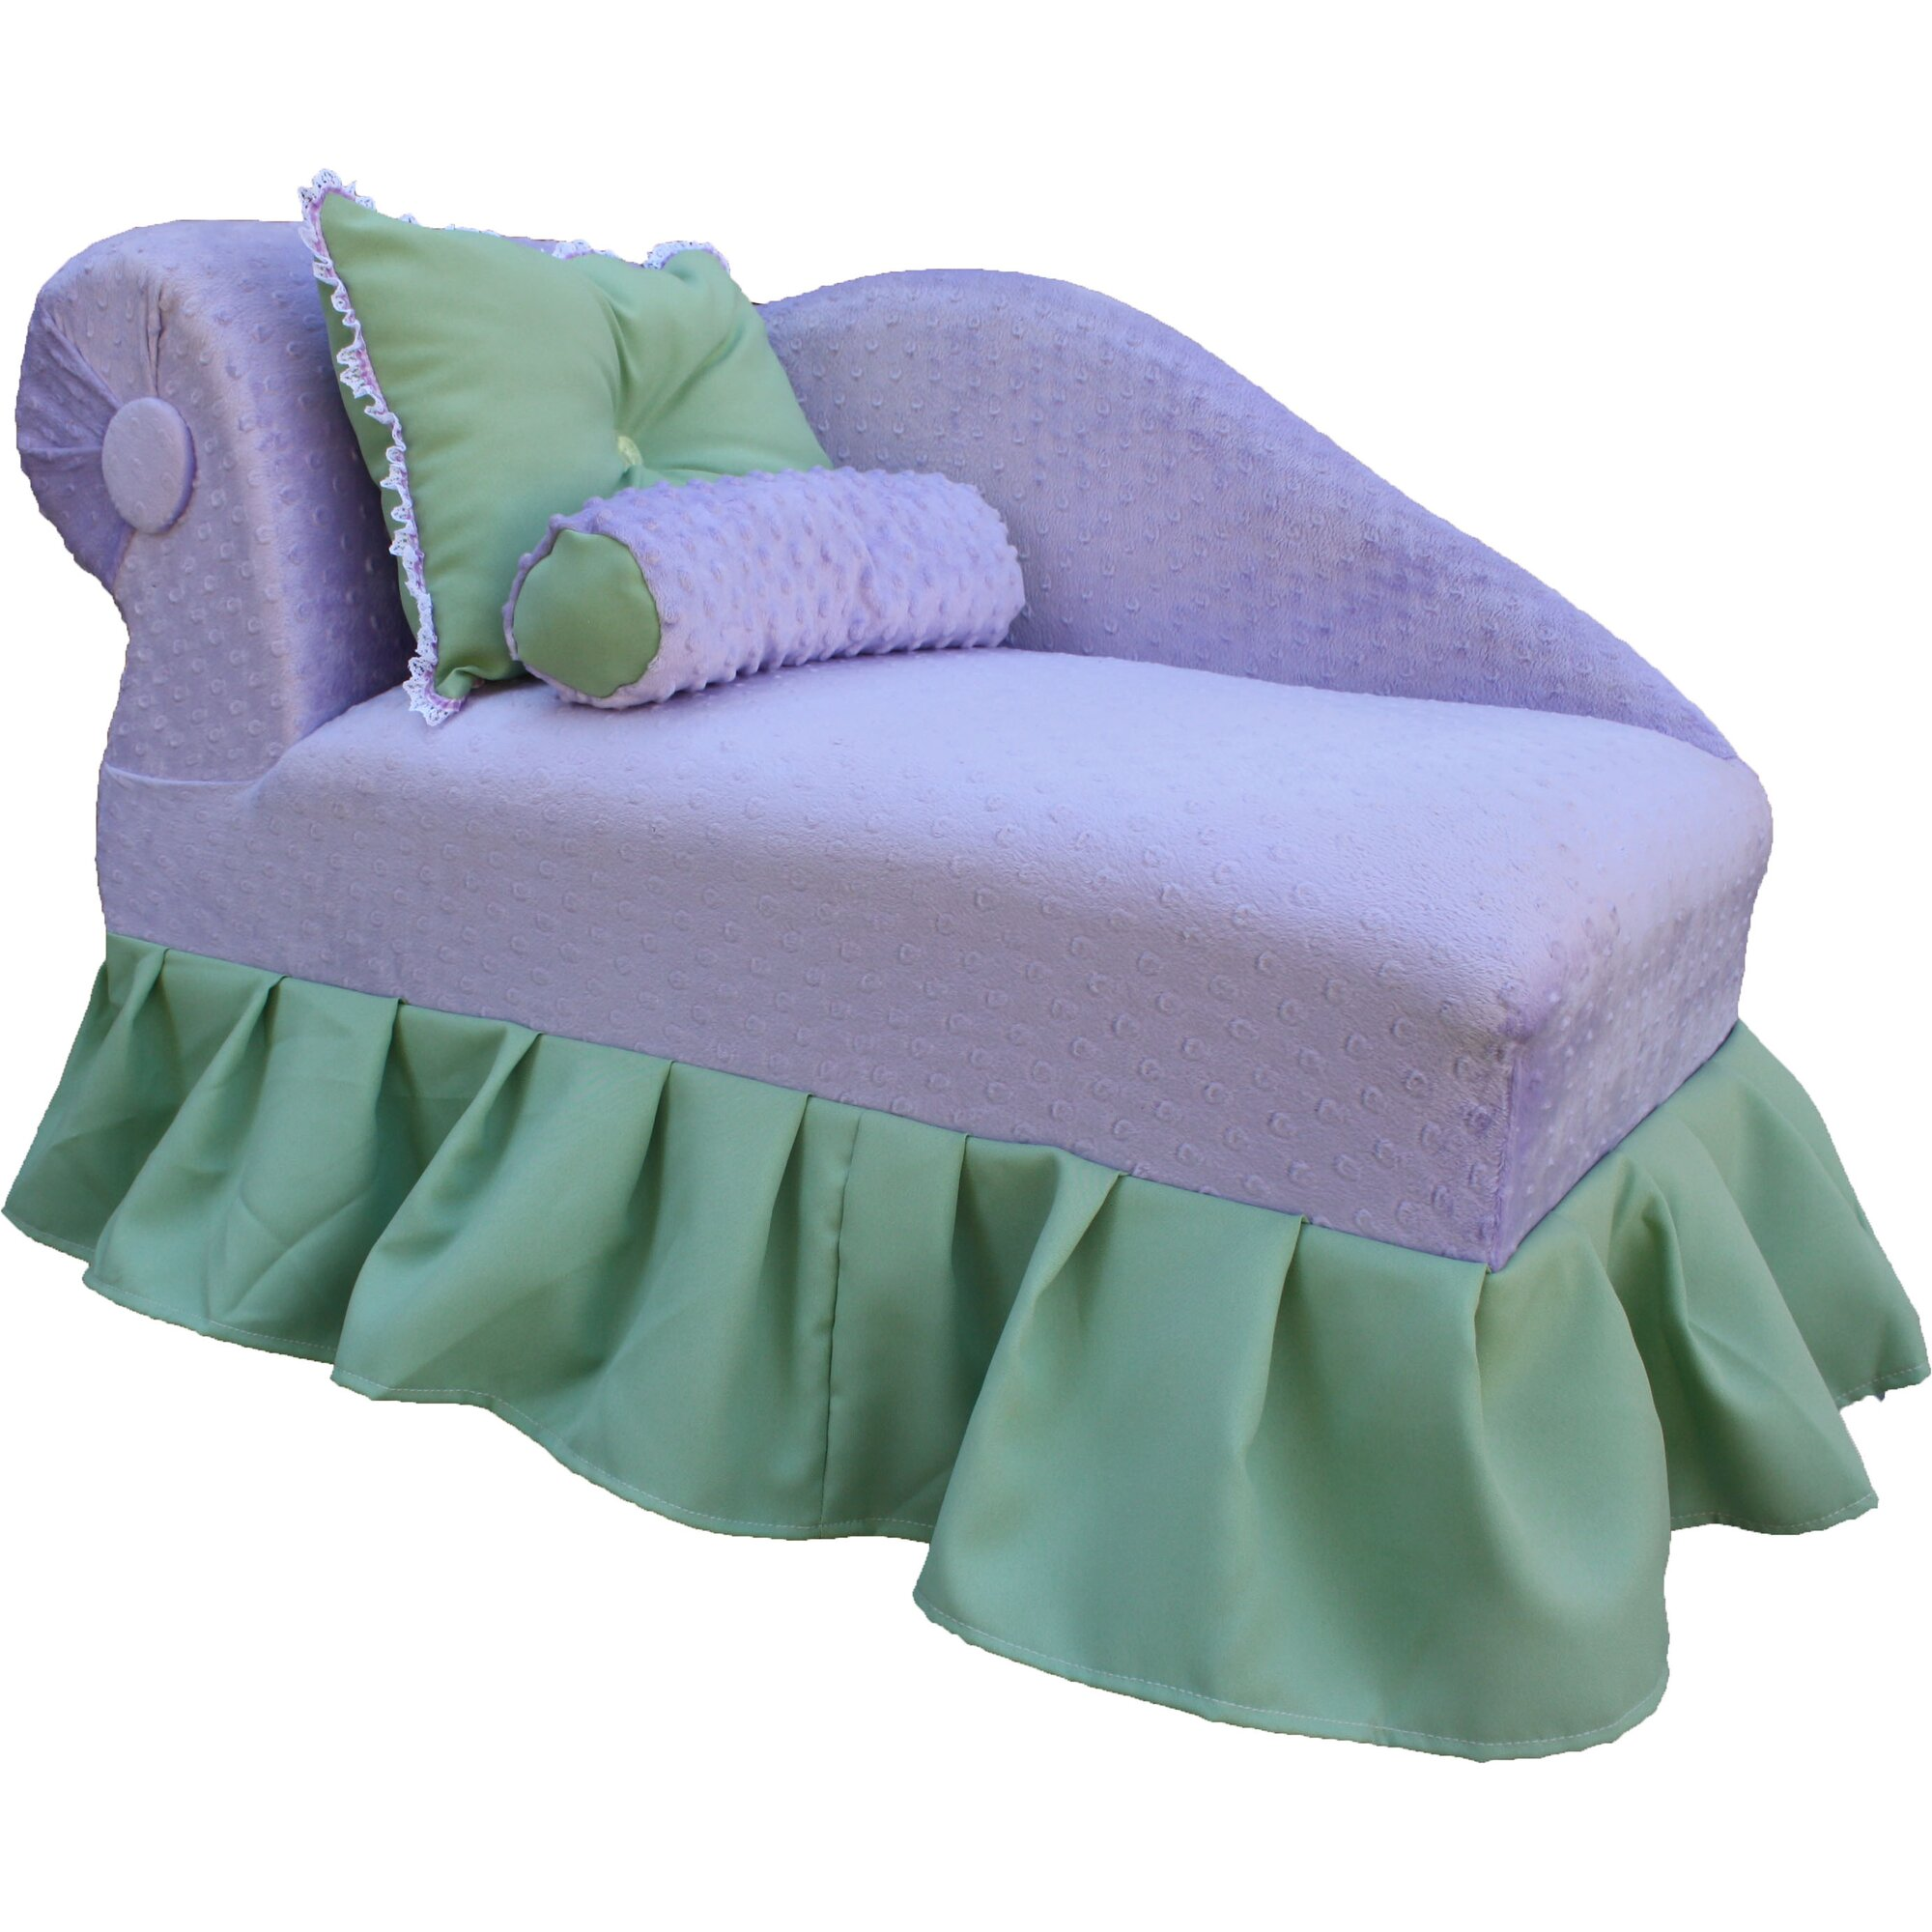 Keet Princess Kids Chaise Lounge & Reviews